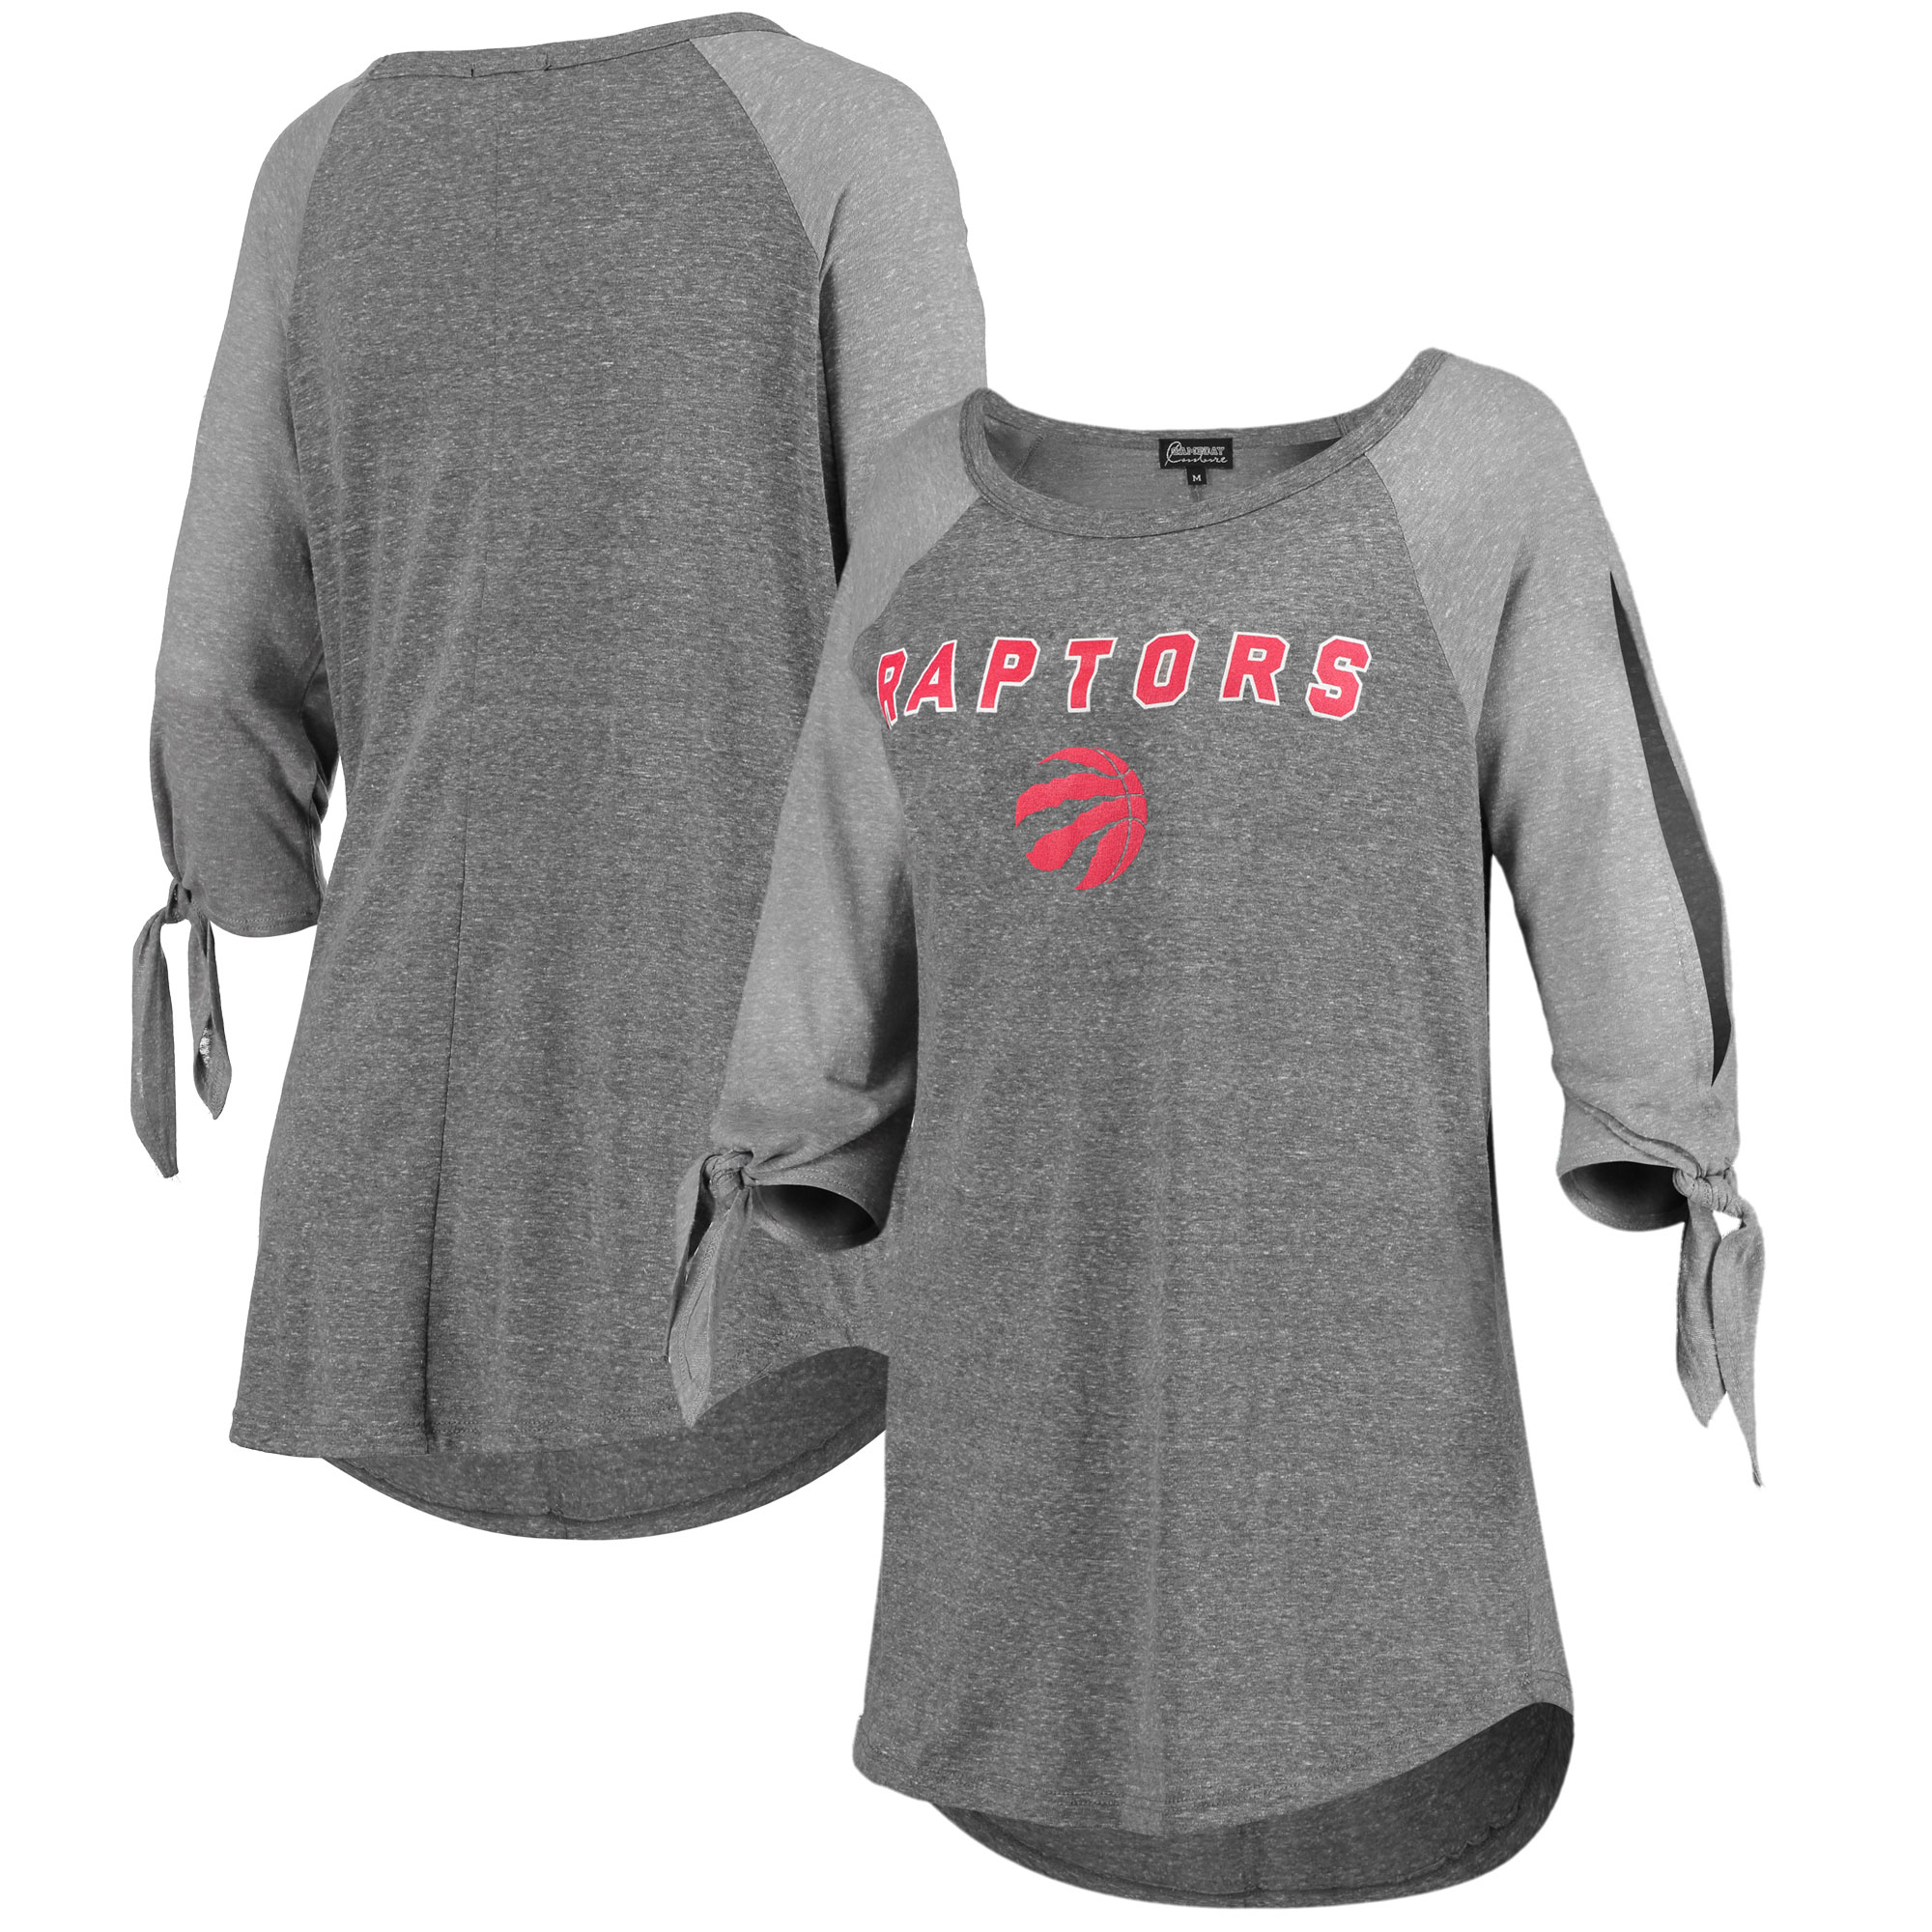 Toronto Raptors Women's Open Shoulder Raglan Tri-Blend 3/4-Sleeve T-Shirt - Heathered Gray